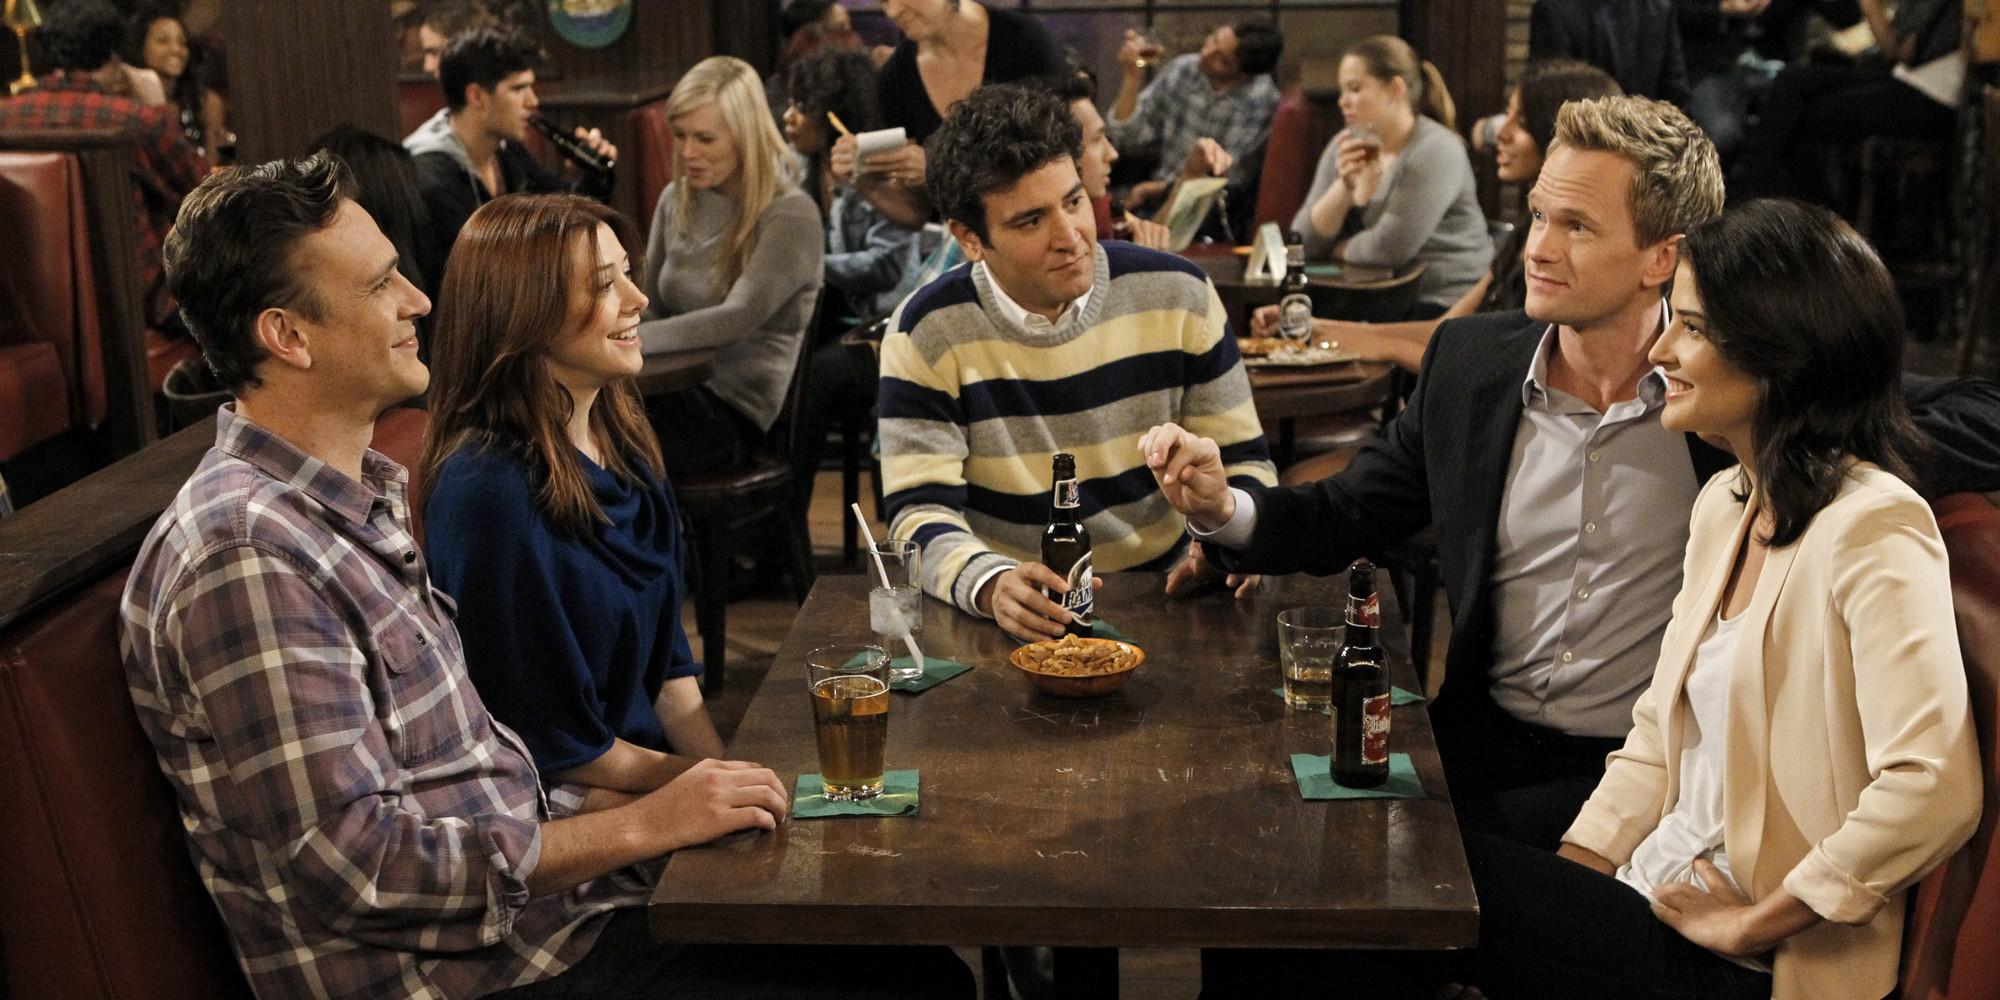 Three years later I m still not over how badly How I Met Your